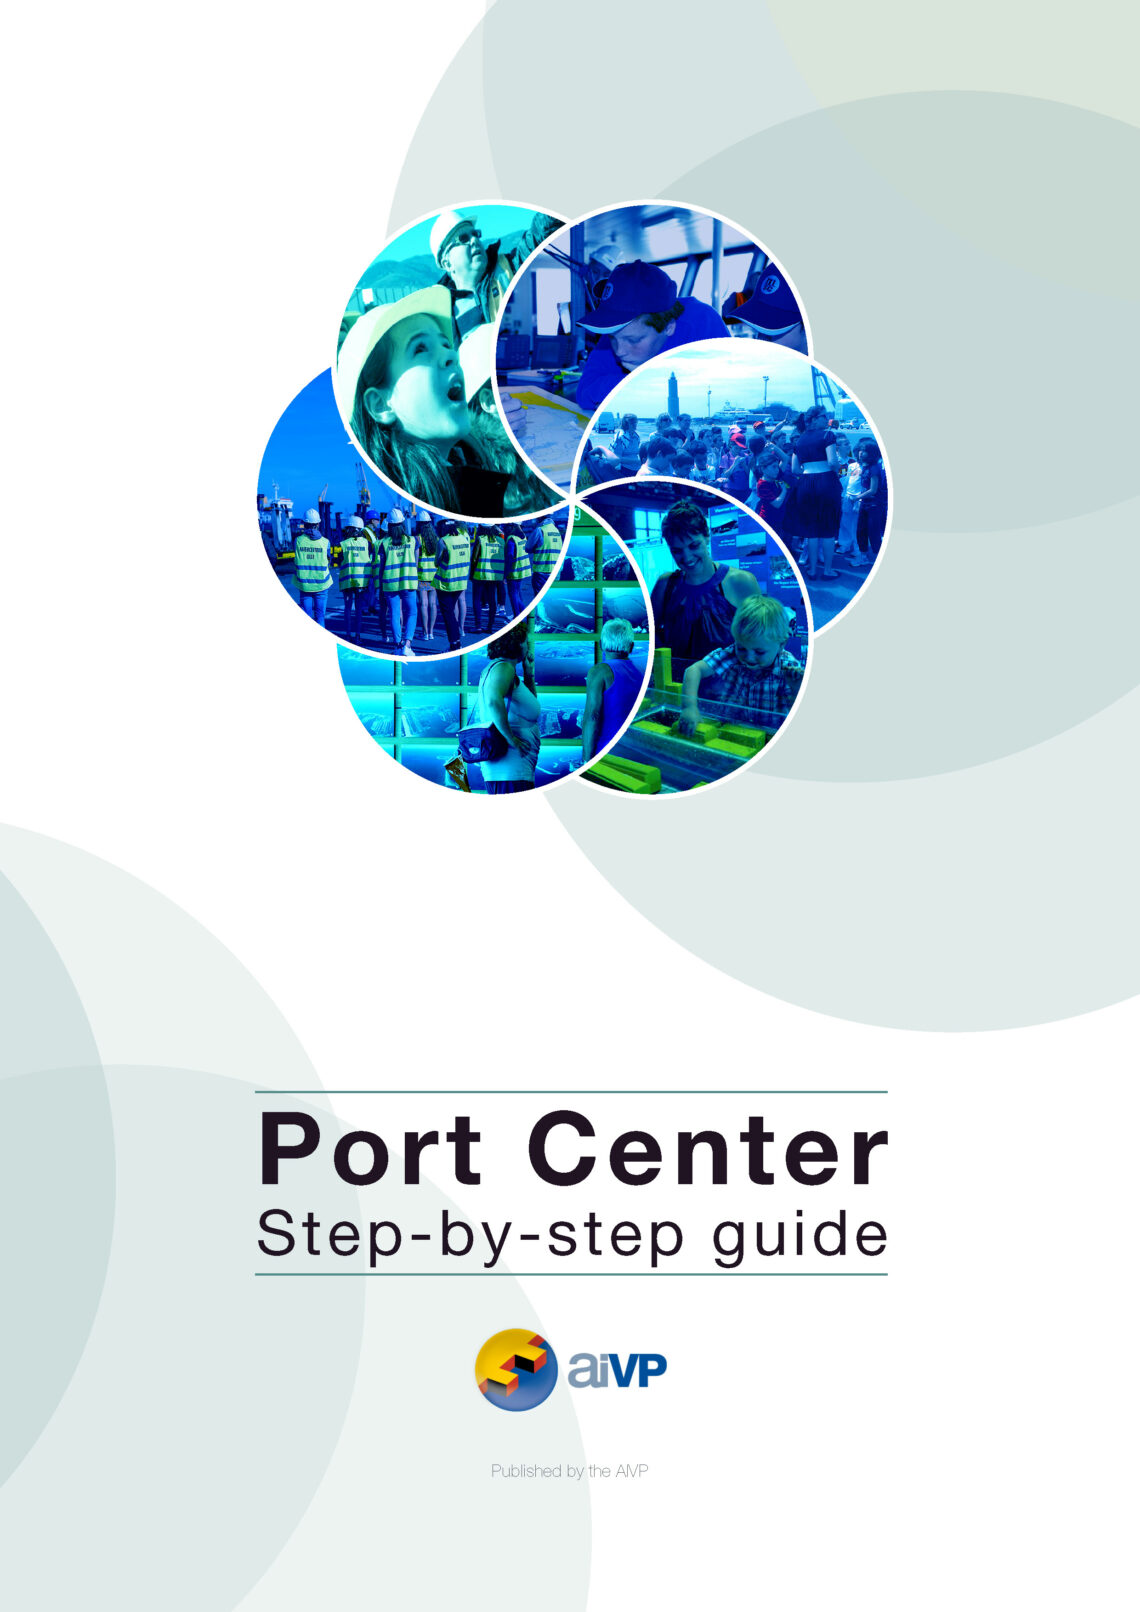 Cover page of the port center step by step guide